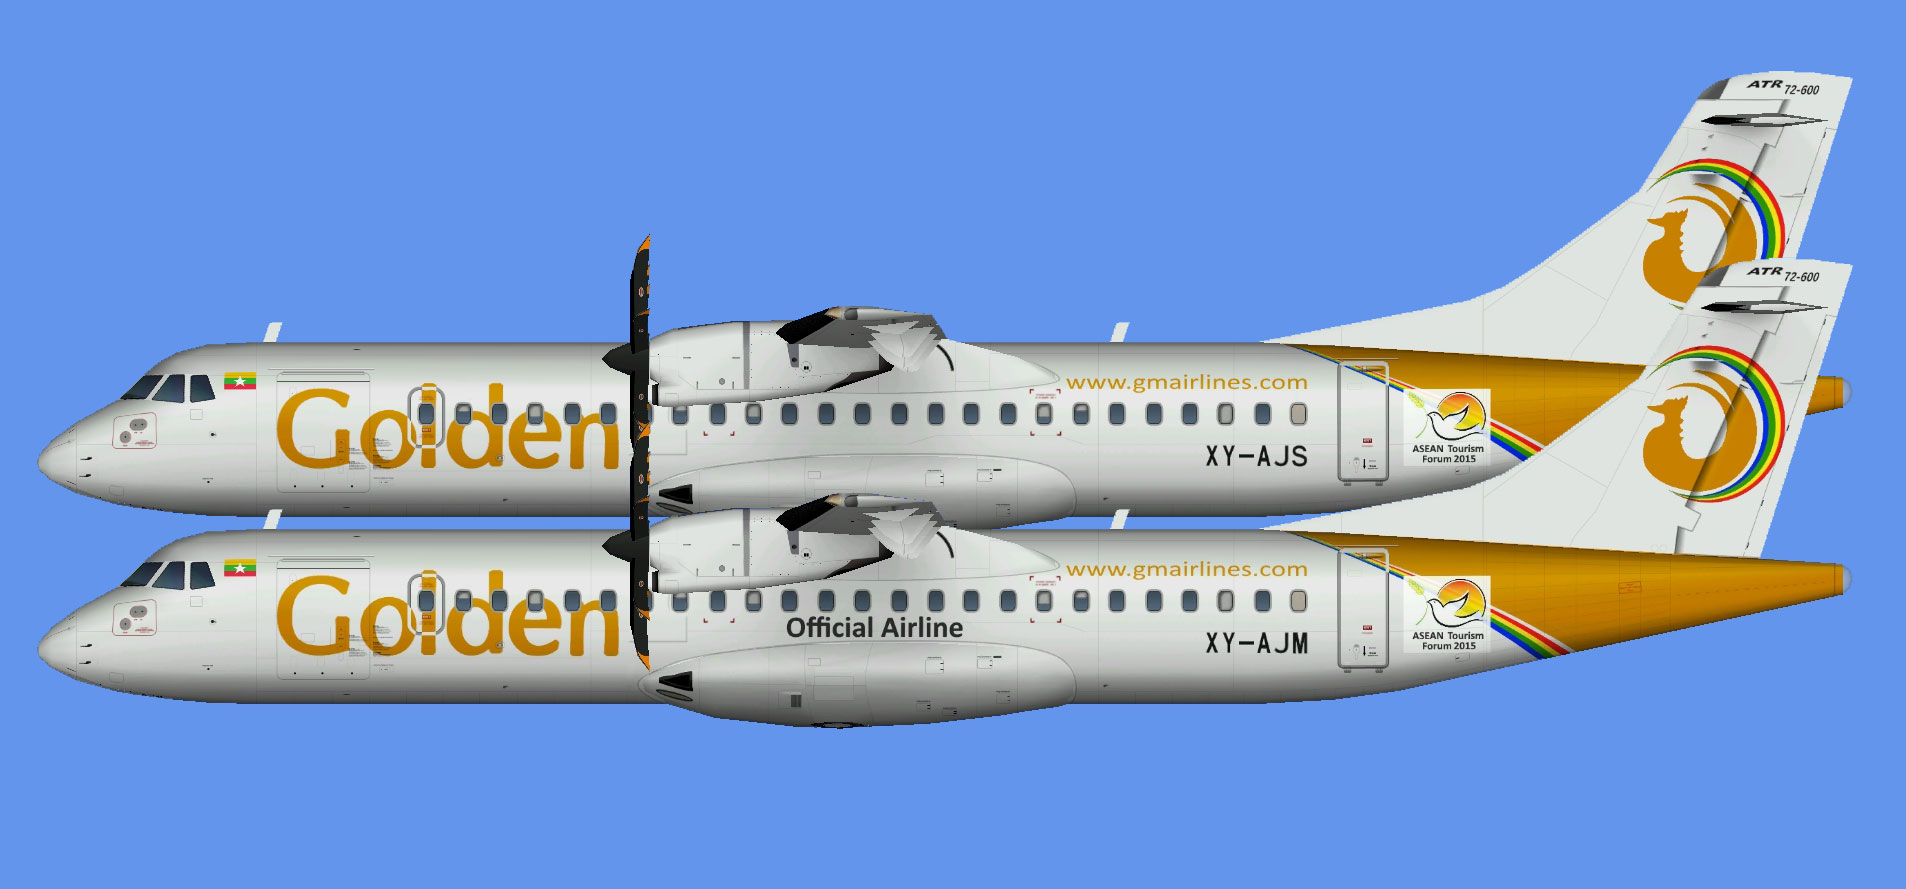 Golden Myanmar ATR 72